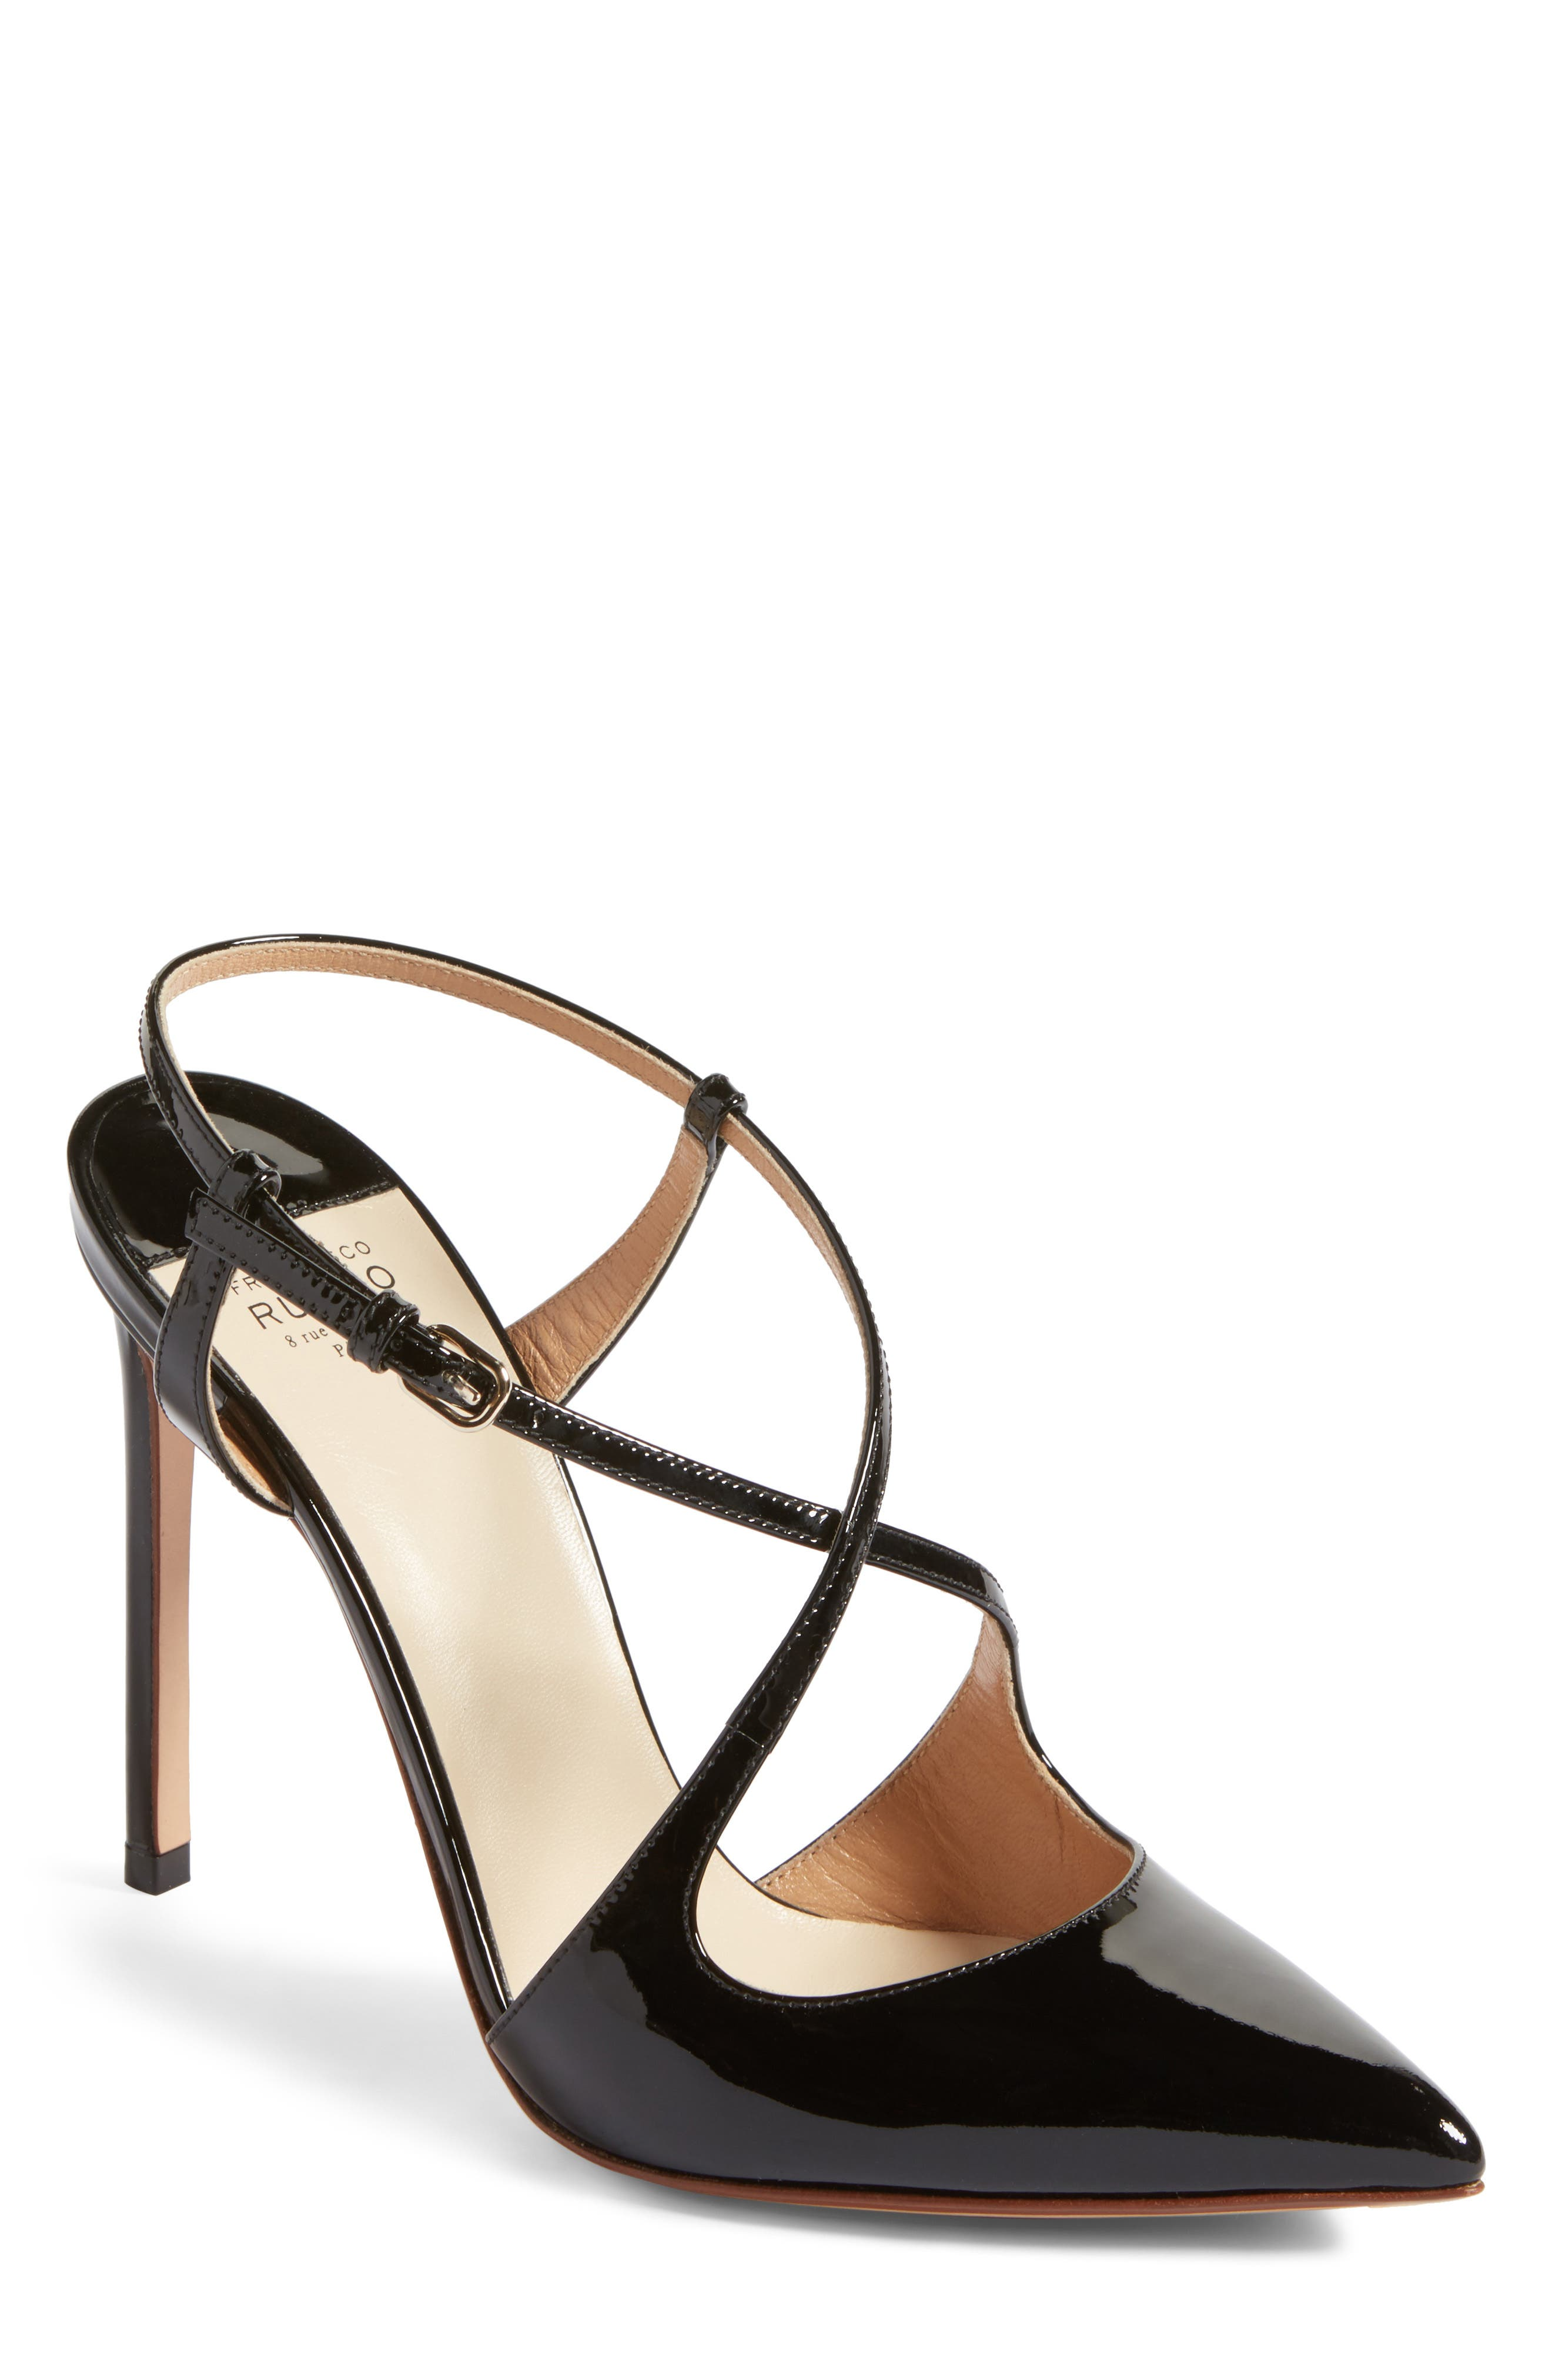 Main Image - Francesco Russo Criss Cross Pump (Women)